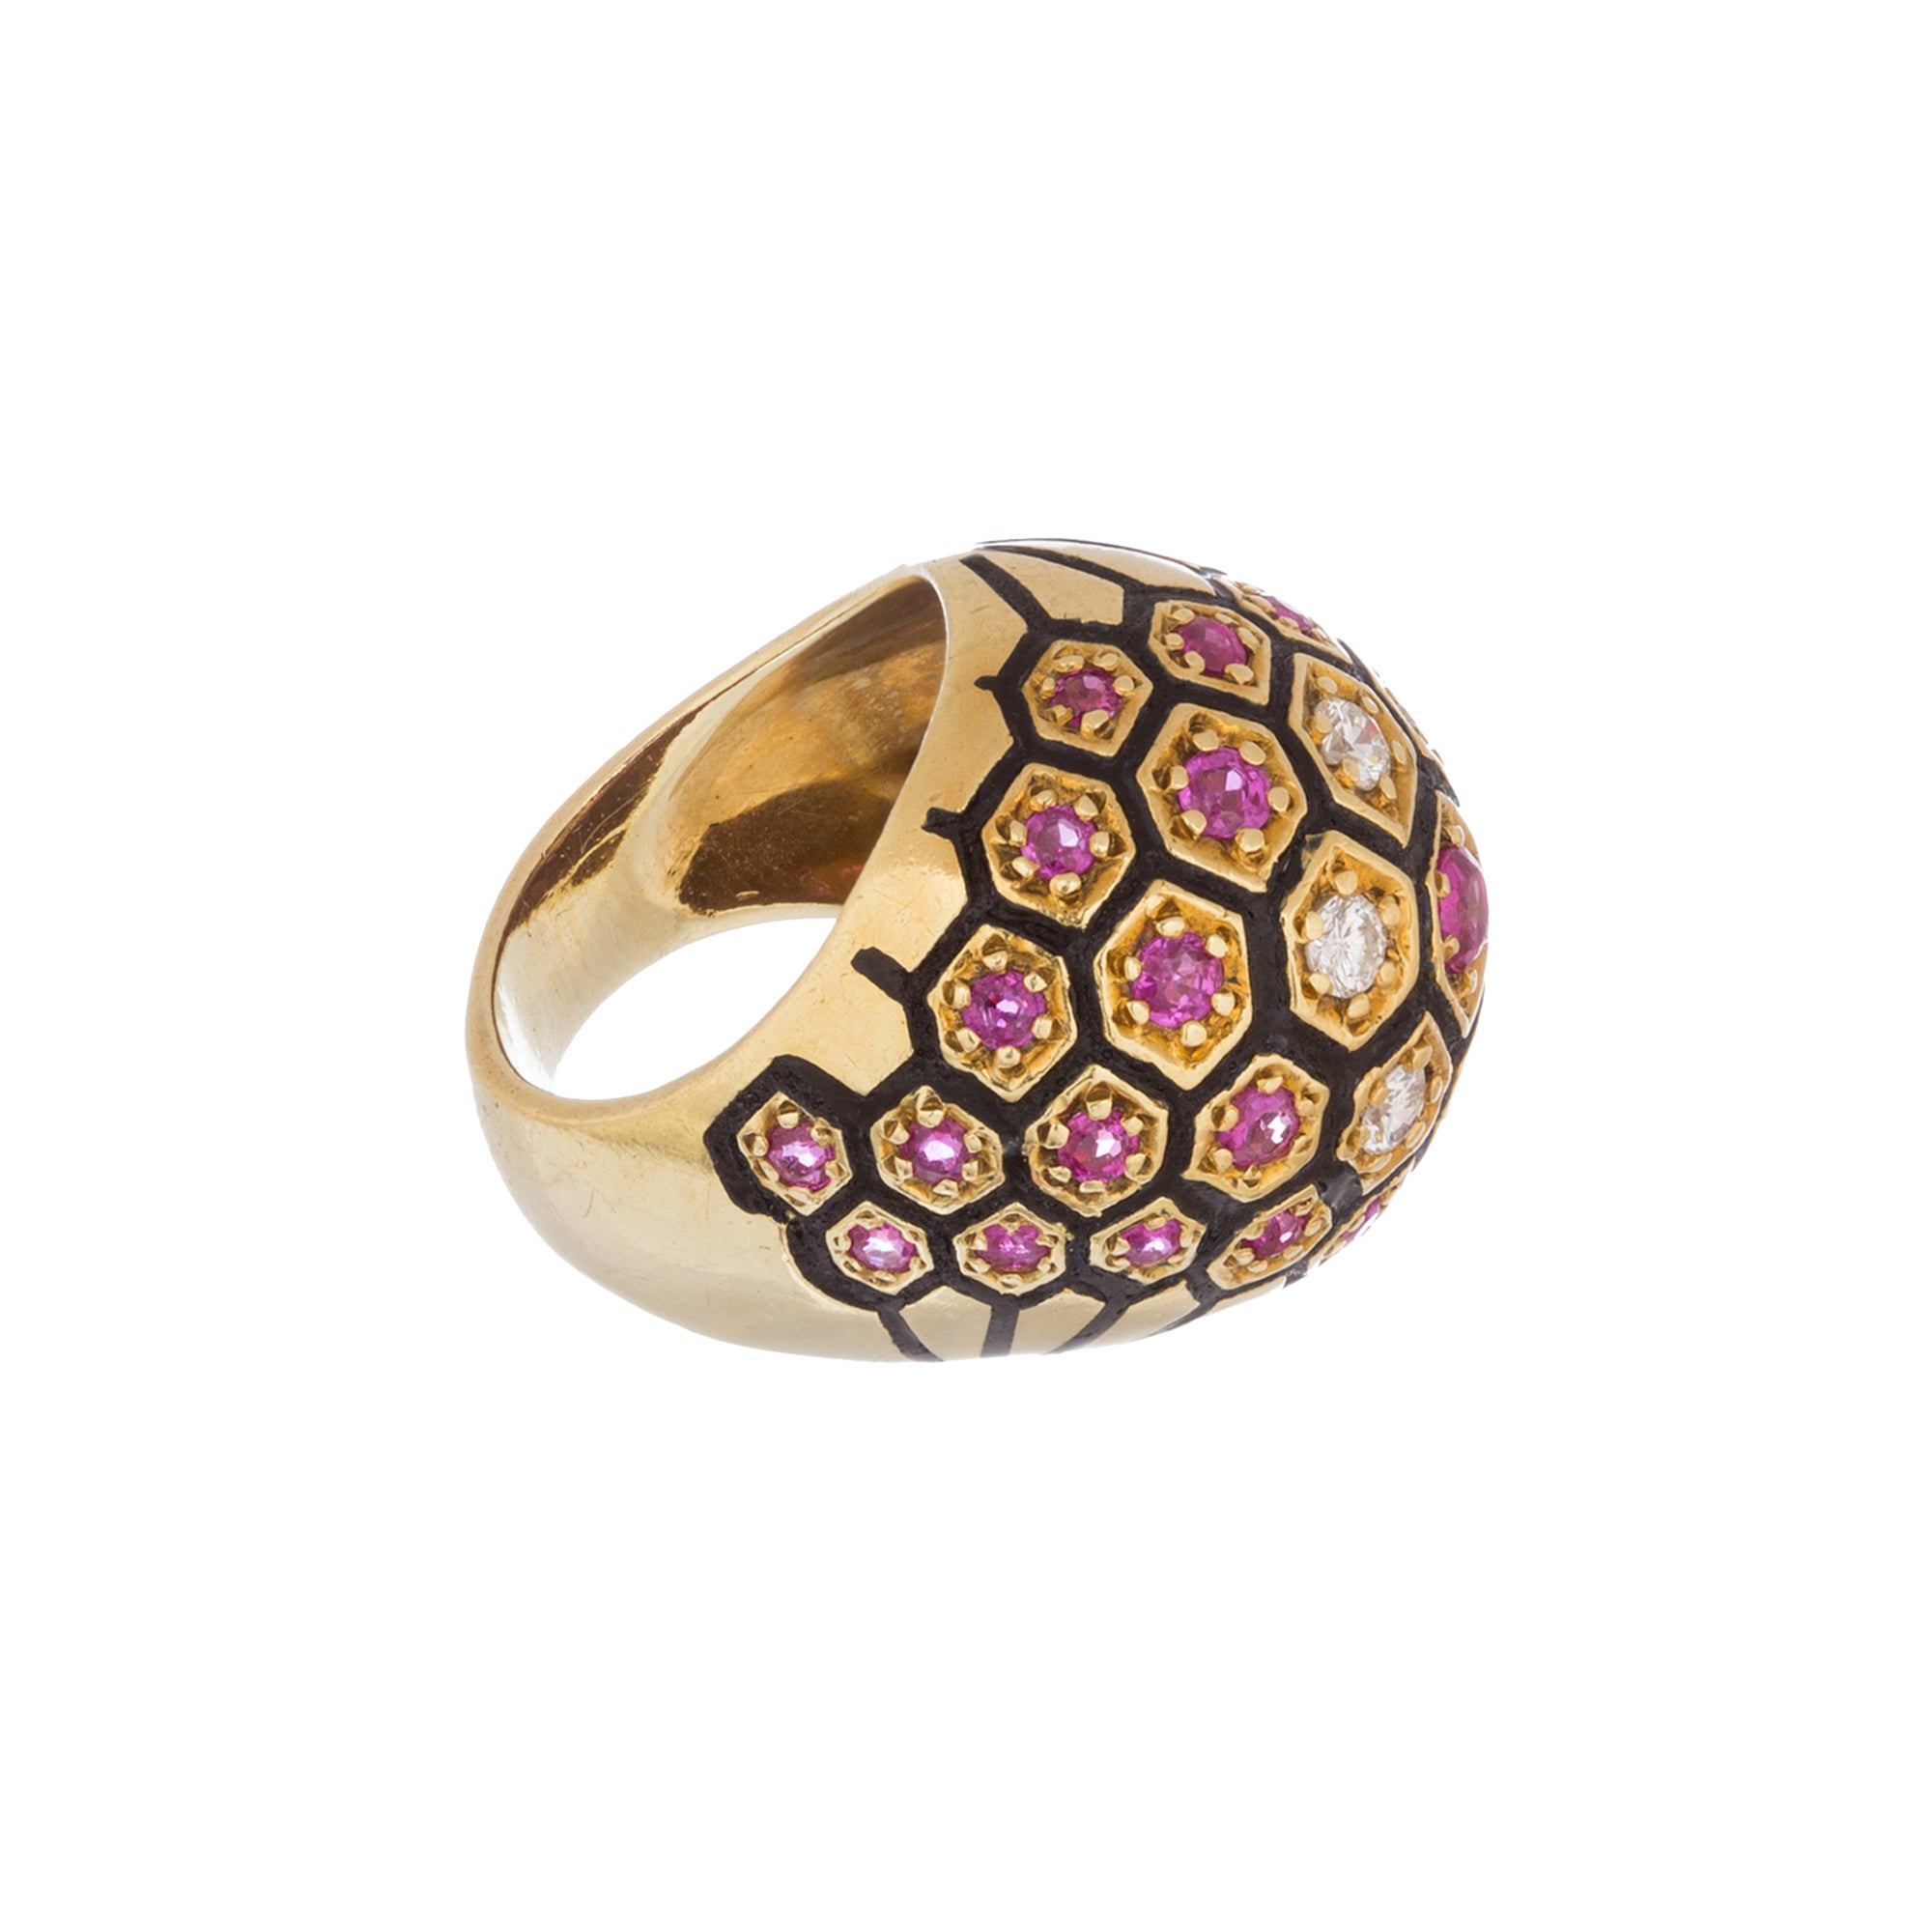 Vinrage Gold Ruby White Diamond Domed Enamel Ring for Broken English Jewelry